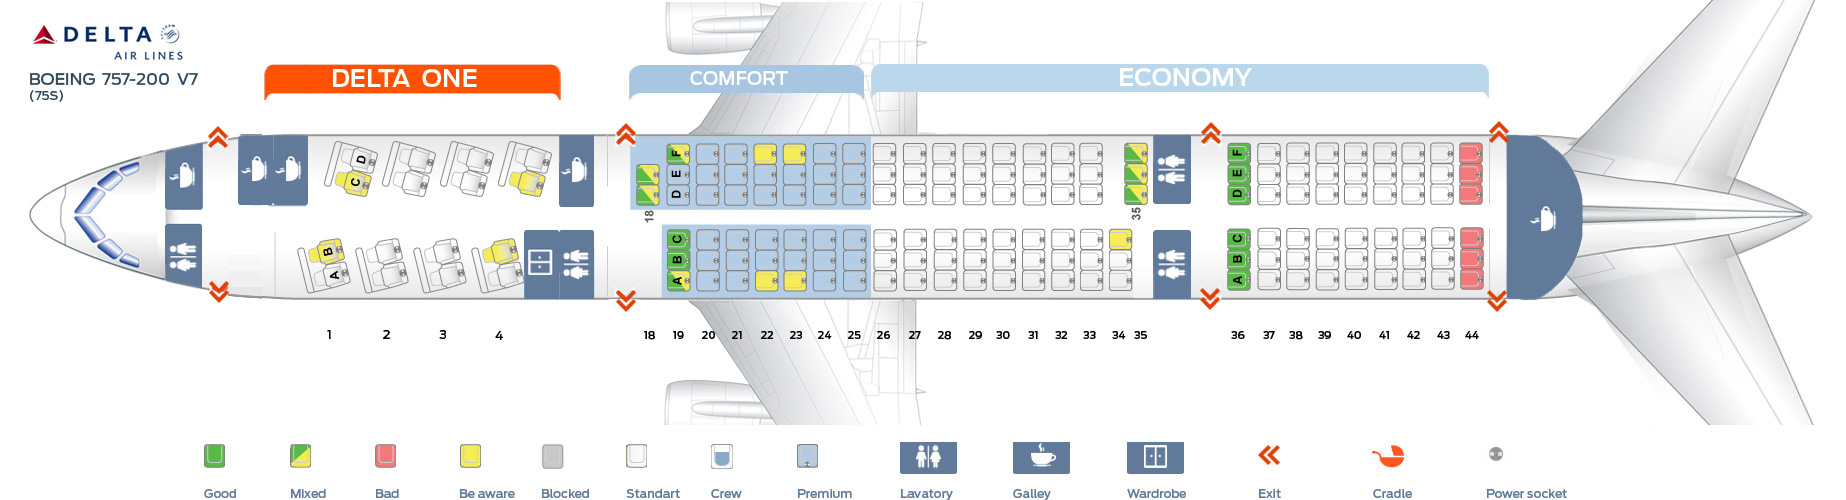 Seat_map_Delta_Airlines_Boeing_757-200_75S_v7